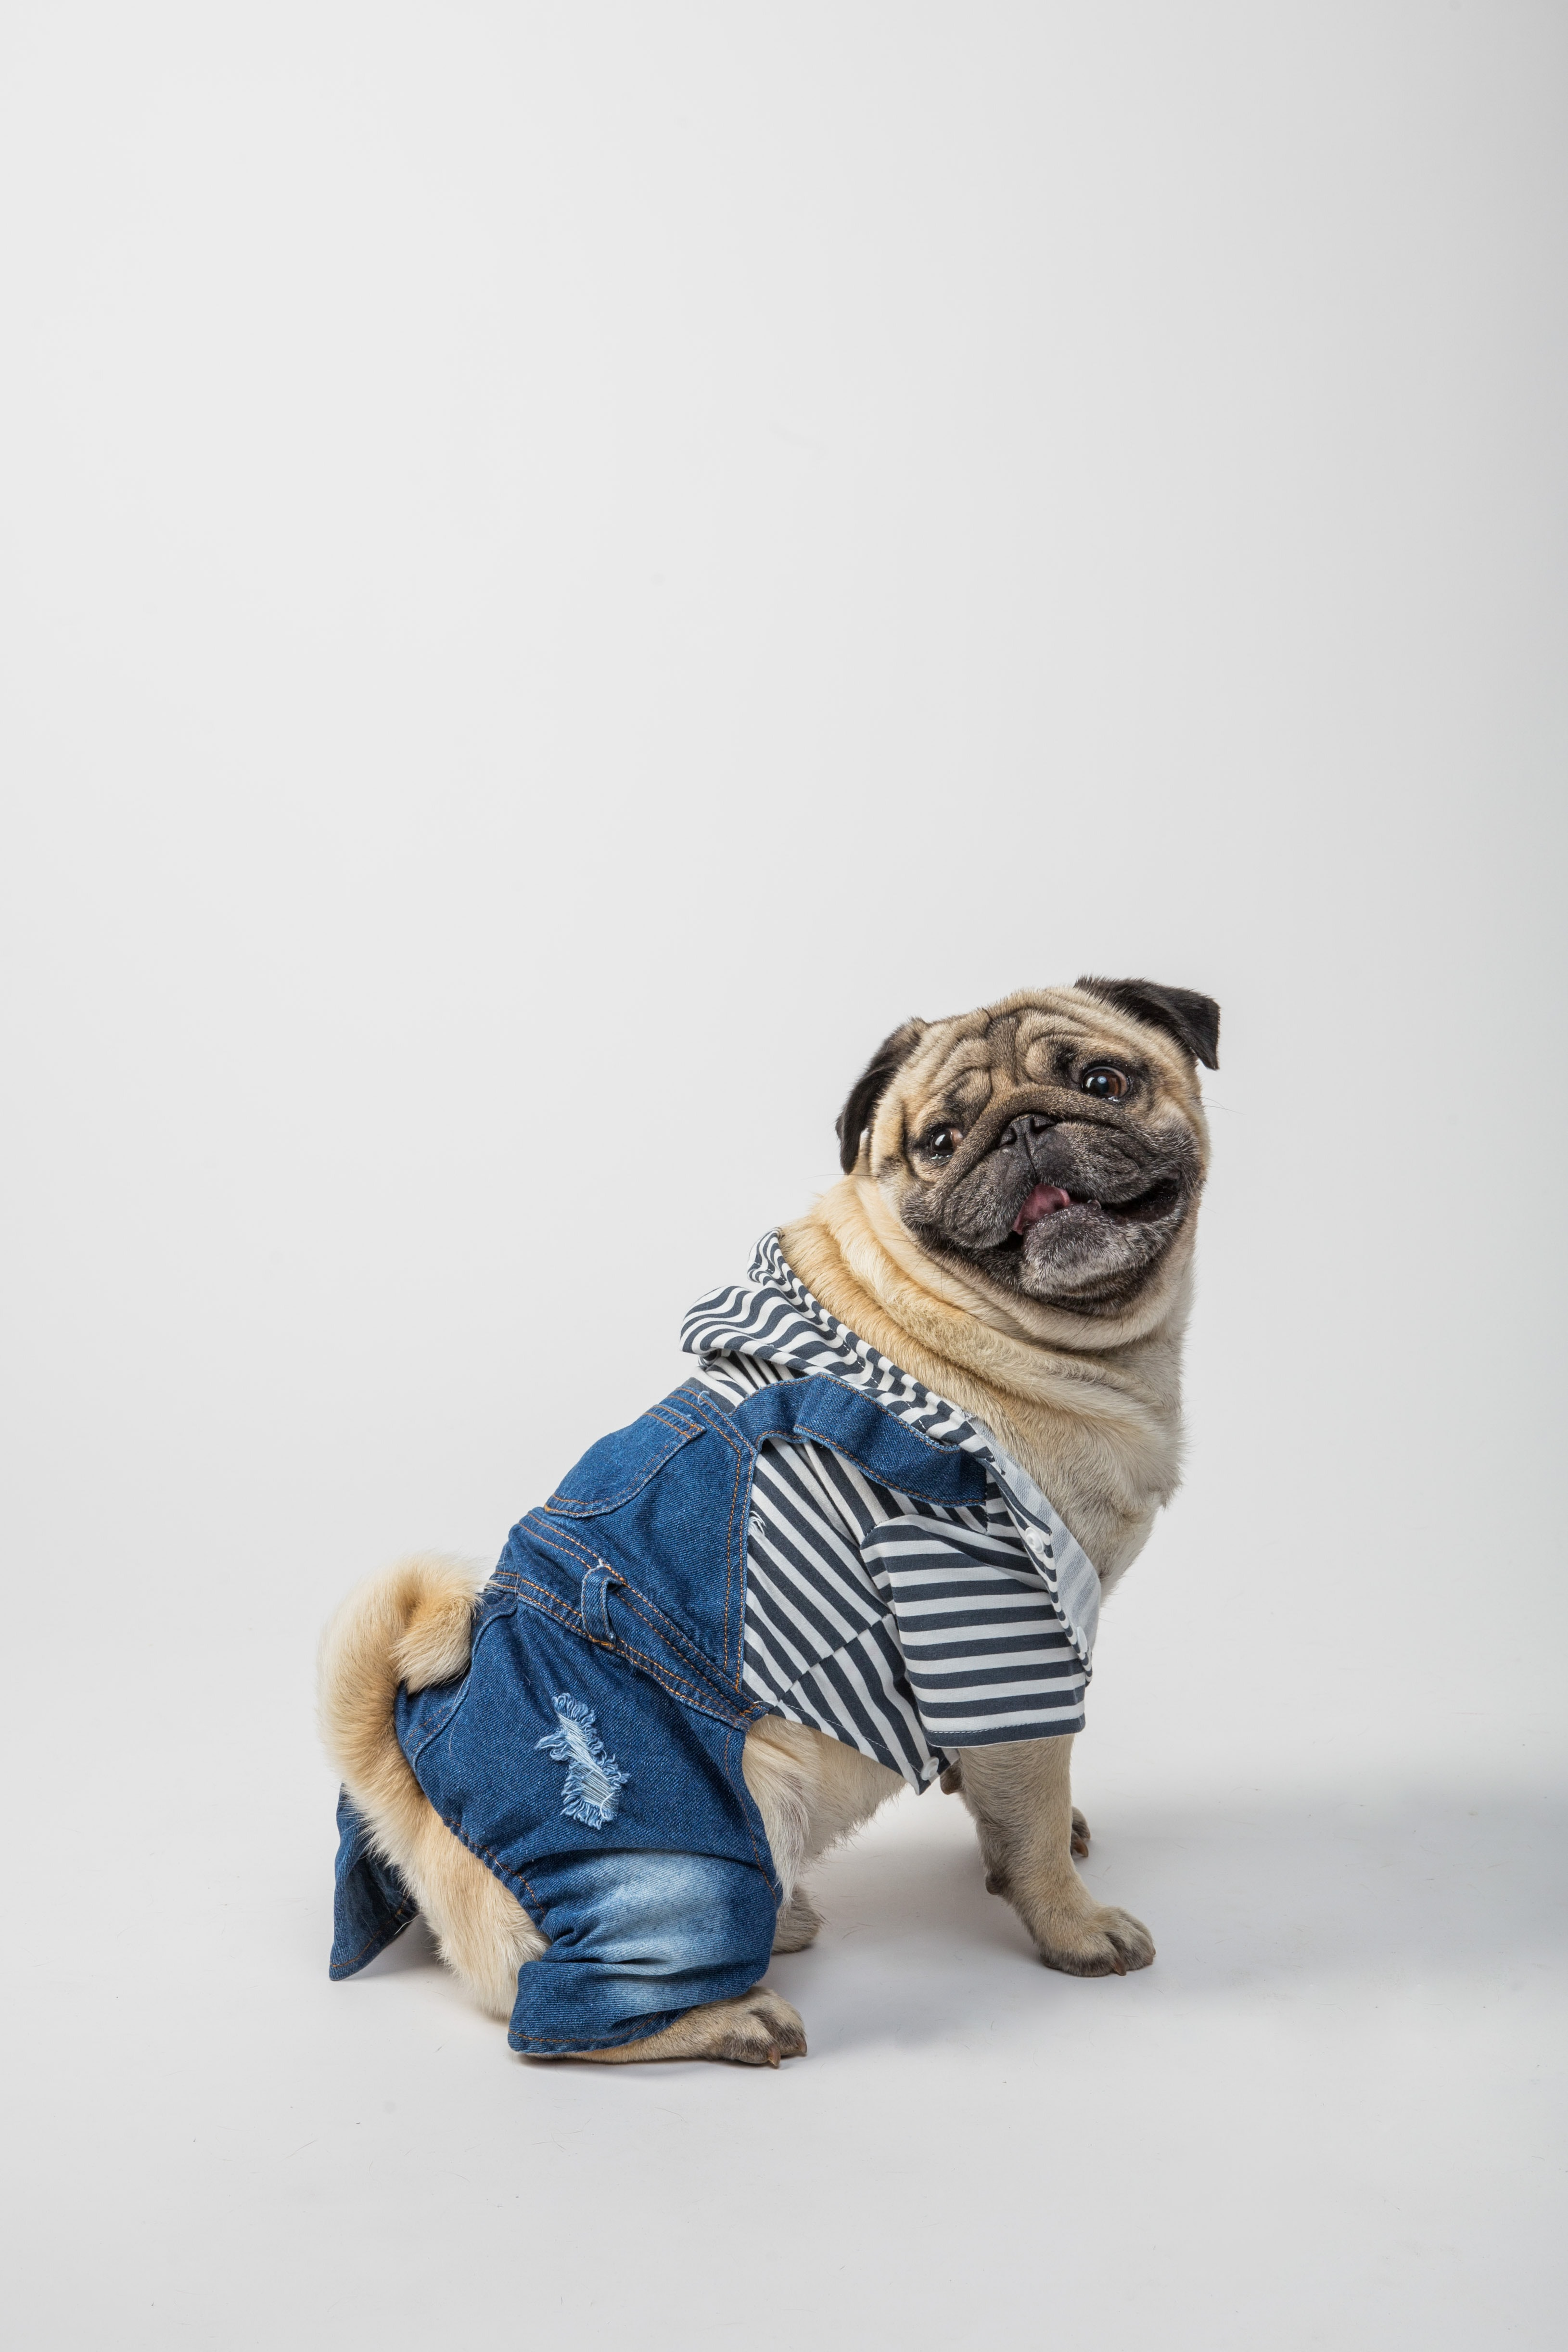 53335 download wallpaper Animals, Pug, Dog, Pet, Protruding Tongue, Tongue Stuck Out screensavers and pictures for free